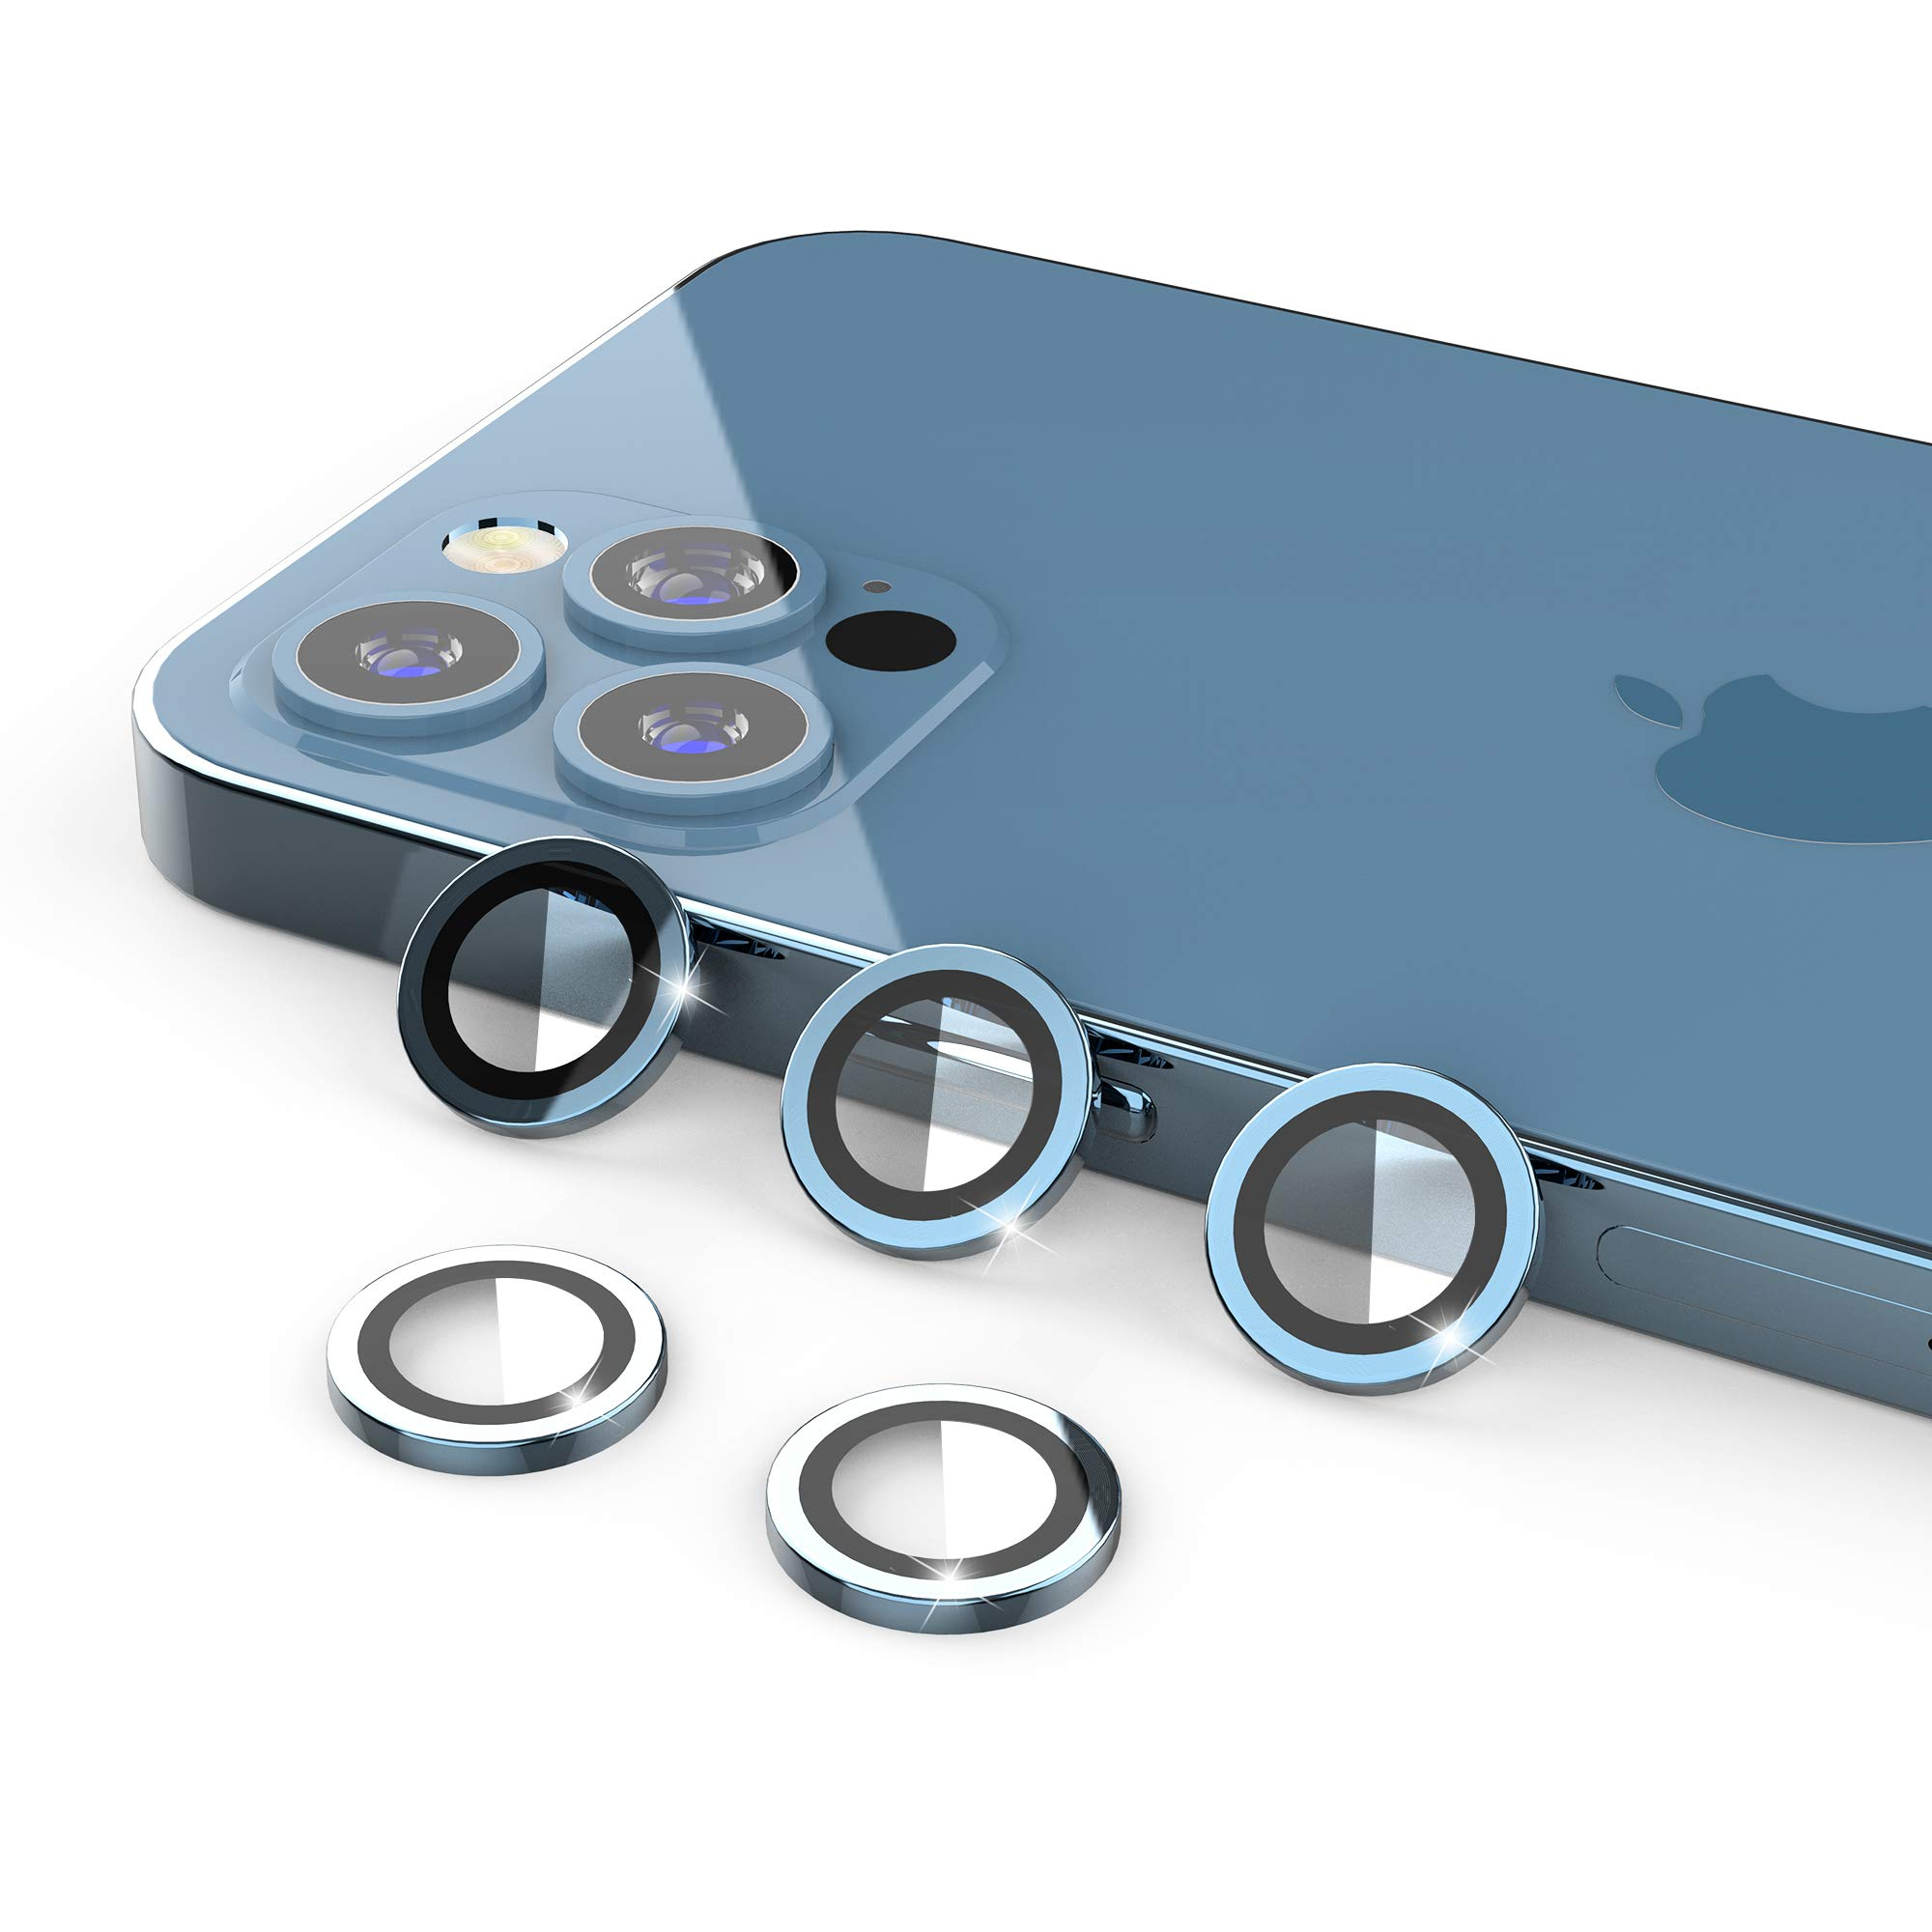 [5 Pack] UniqueMe Compatible with iPhone 12 Pro 6.1 inch Camera Lens Protector Camera Cover Protection [Easy Installation][Anti-Scratch] [Fit Well for Camera]【Not for iPhone 12 Pro Max】- Pacific Blue